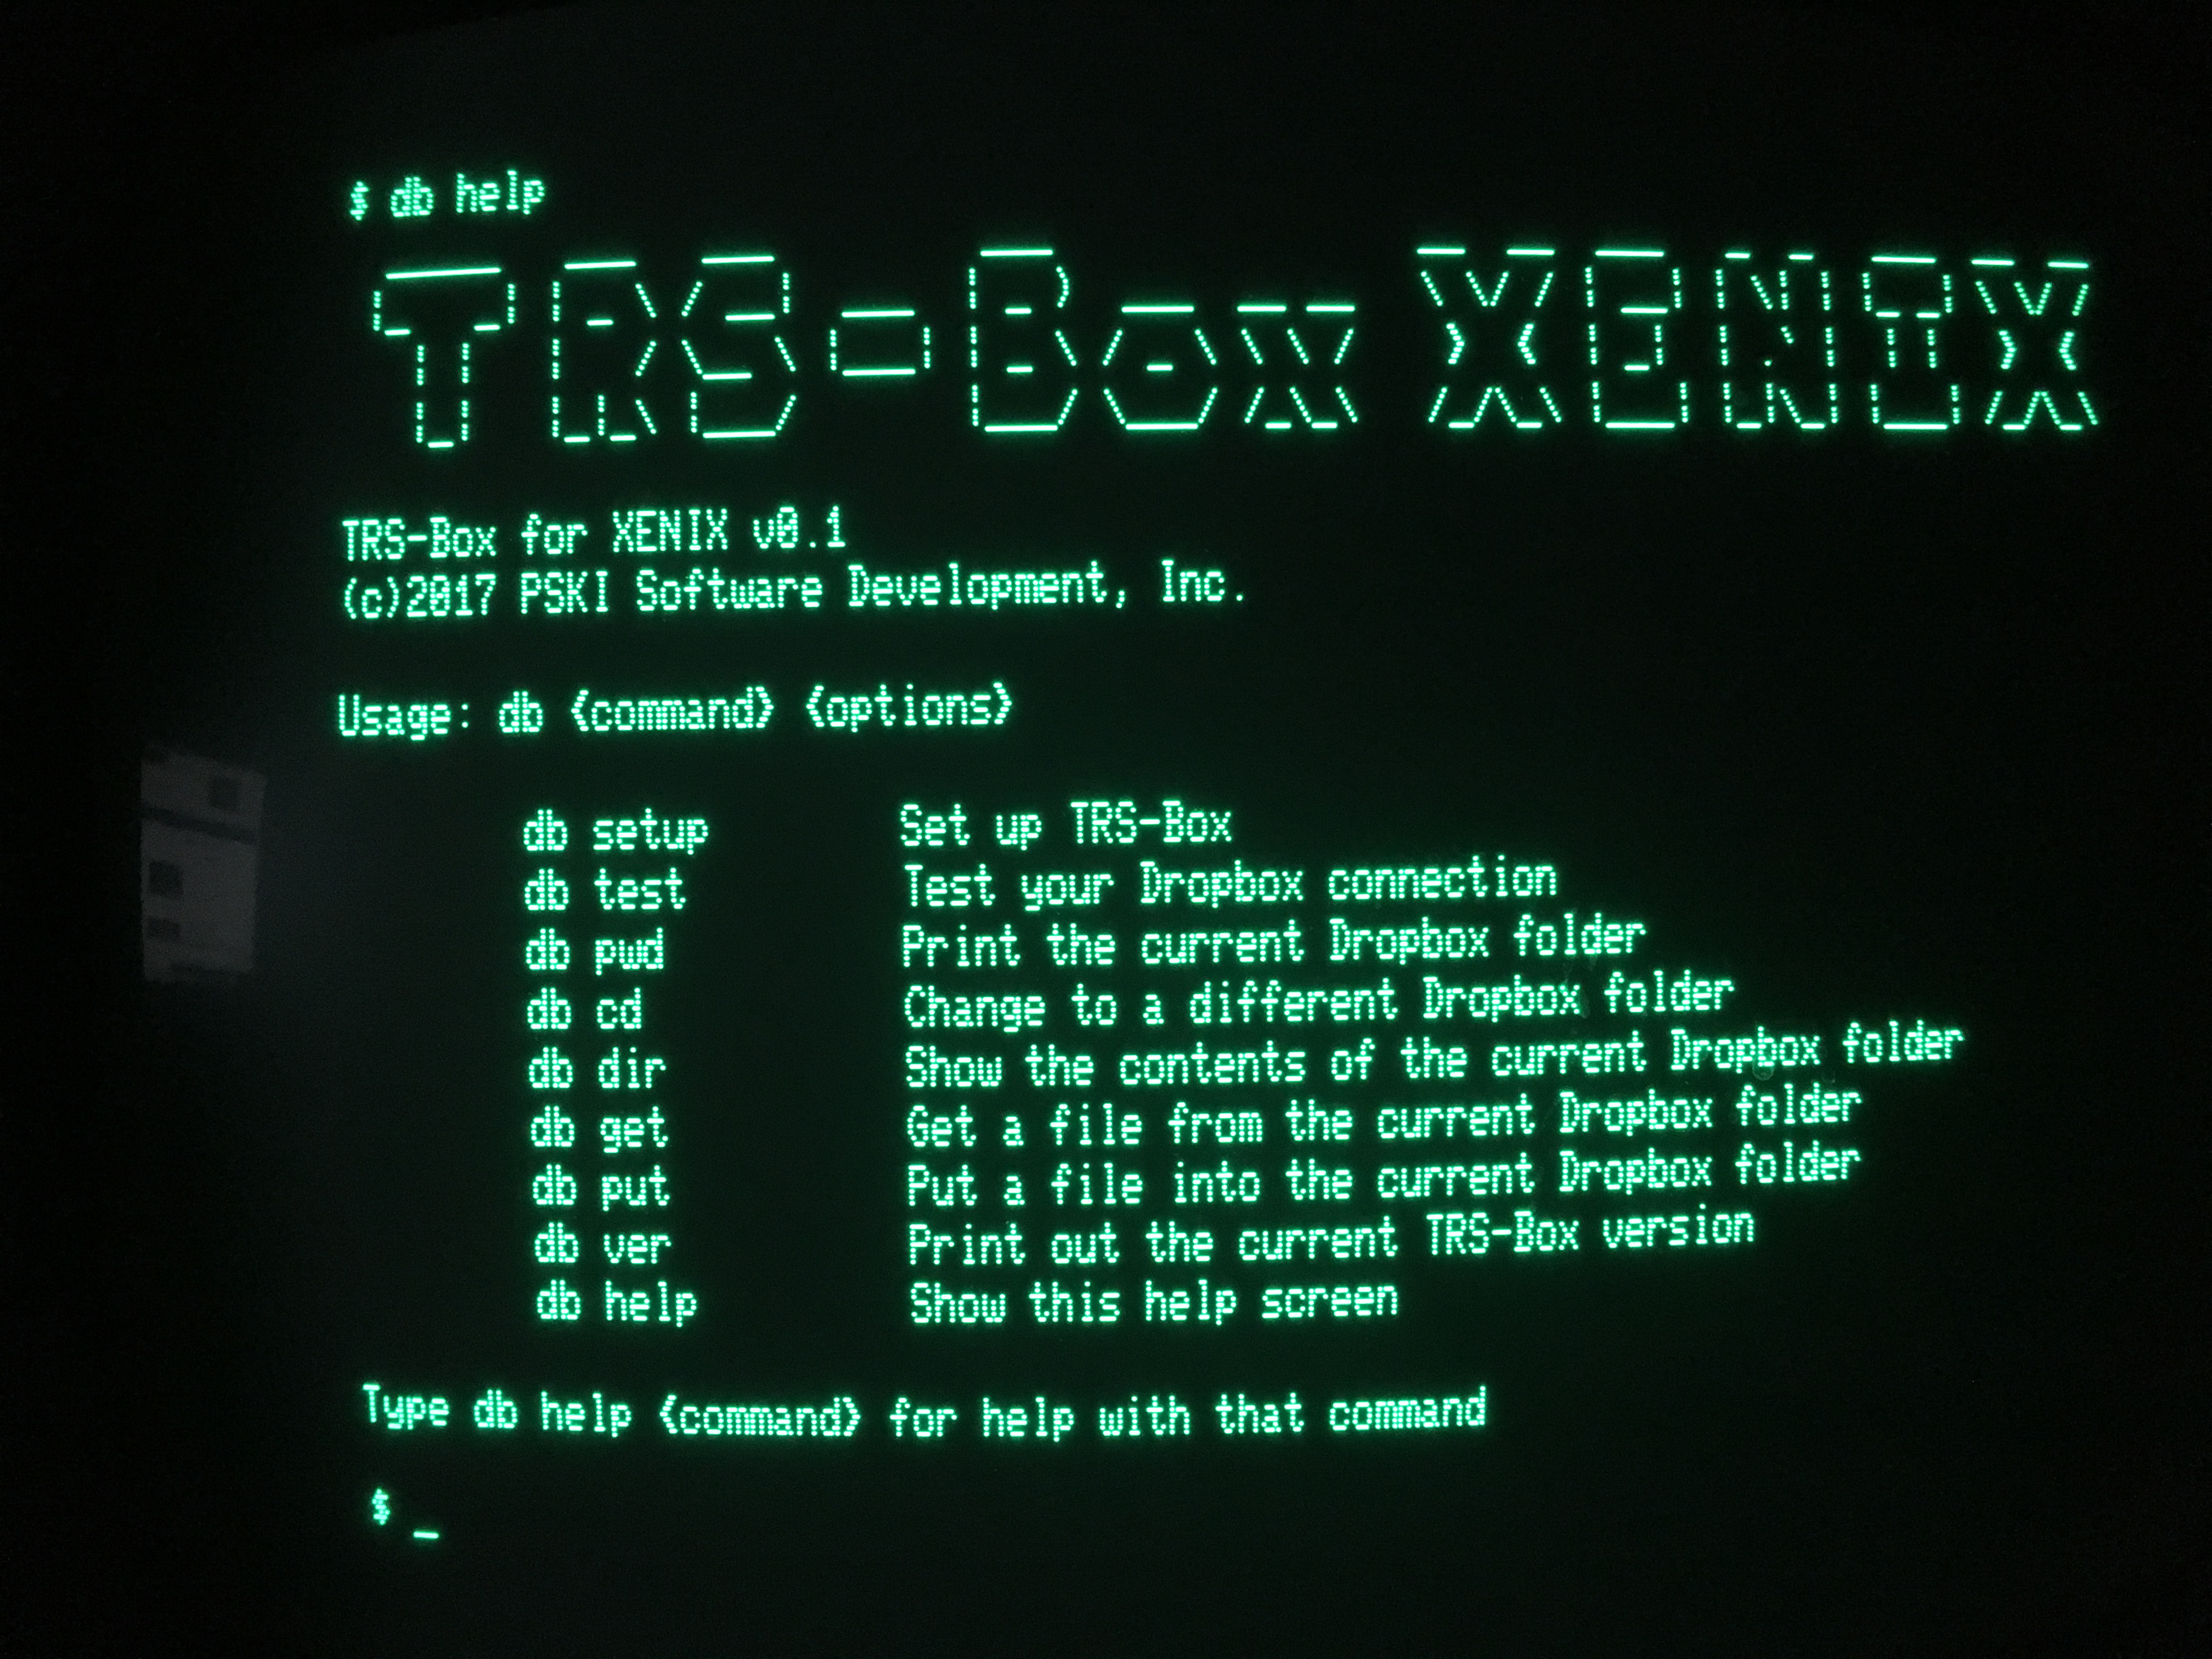 TRS-Box XENIX Help Screen